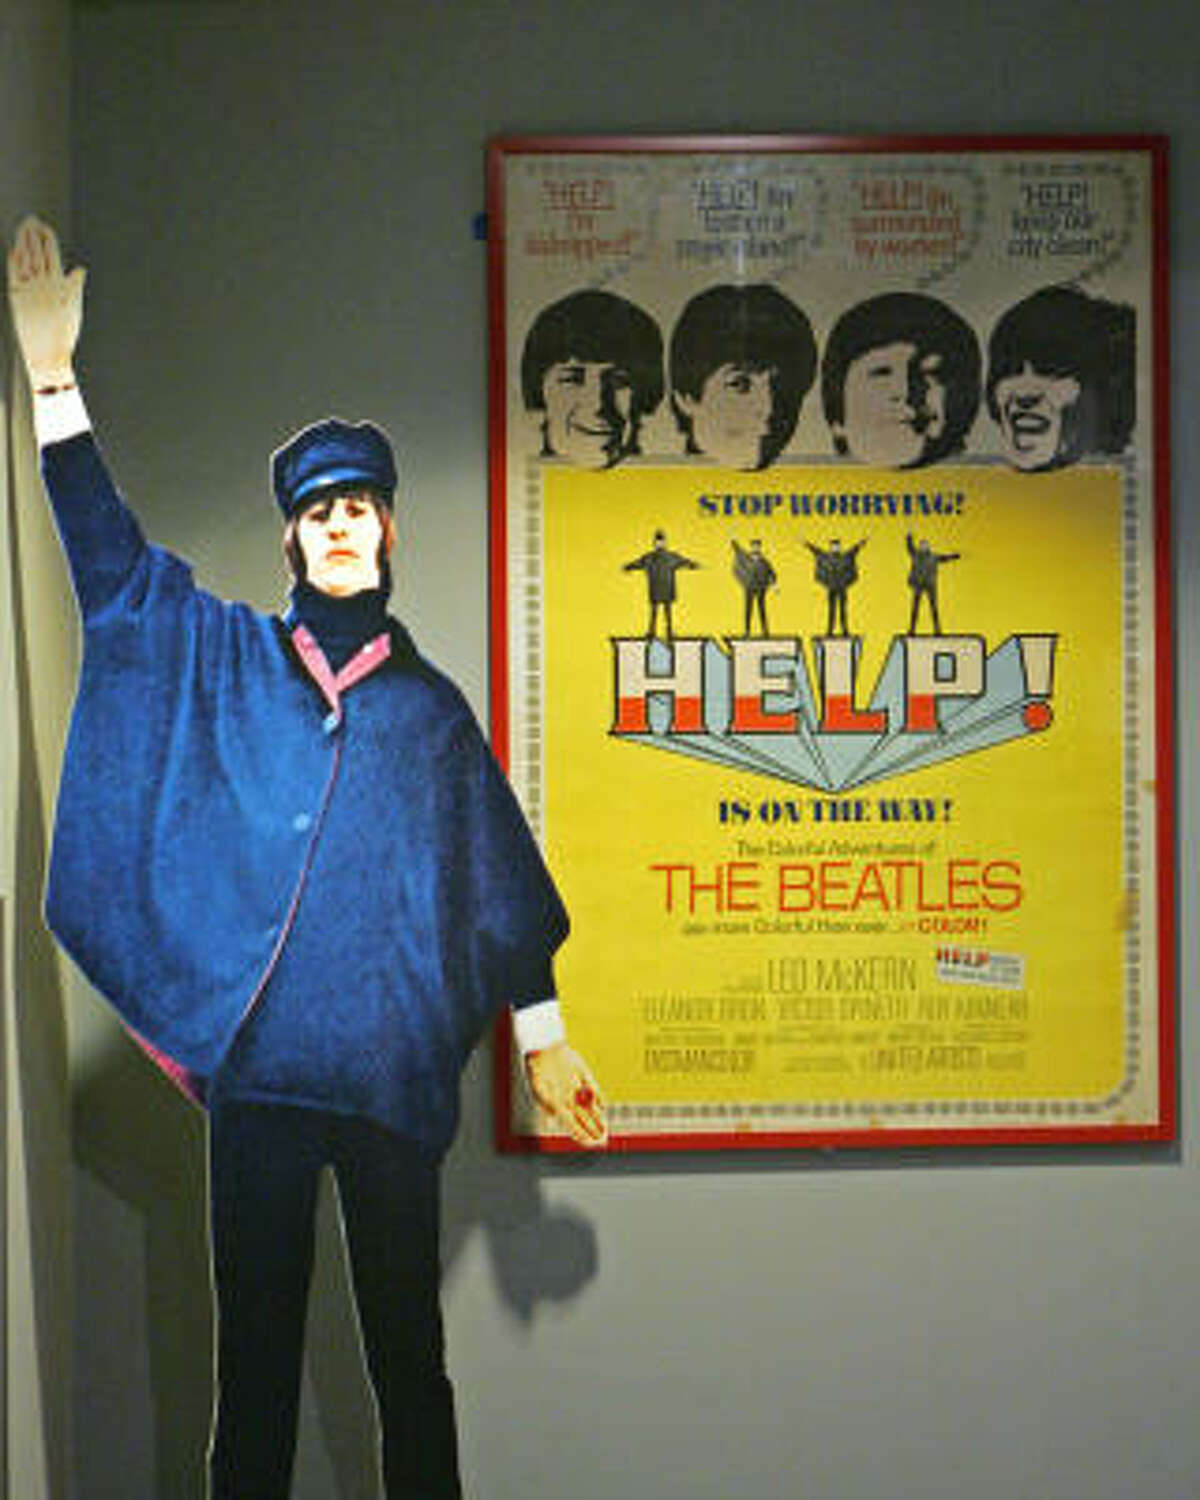 A cutout of Ringo Starr at the Rock and Roll Hall of Fame.